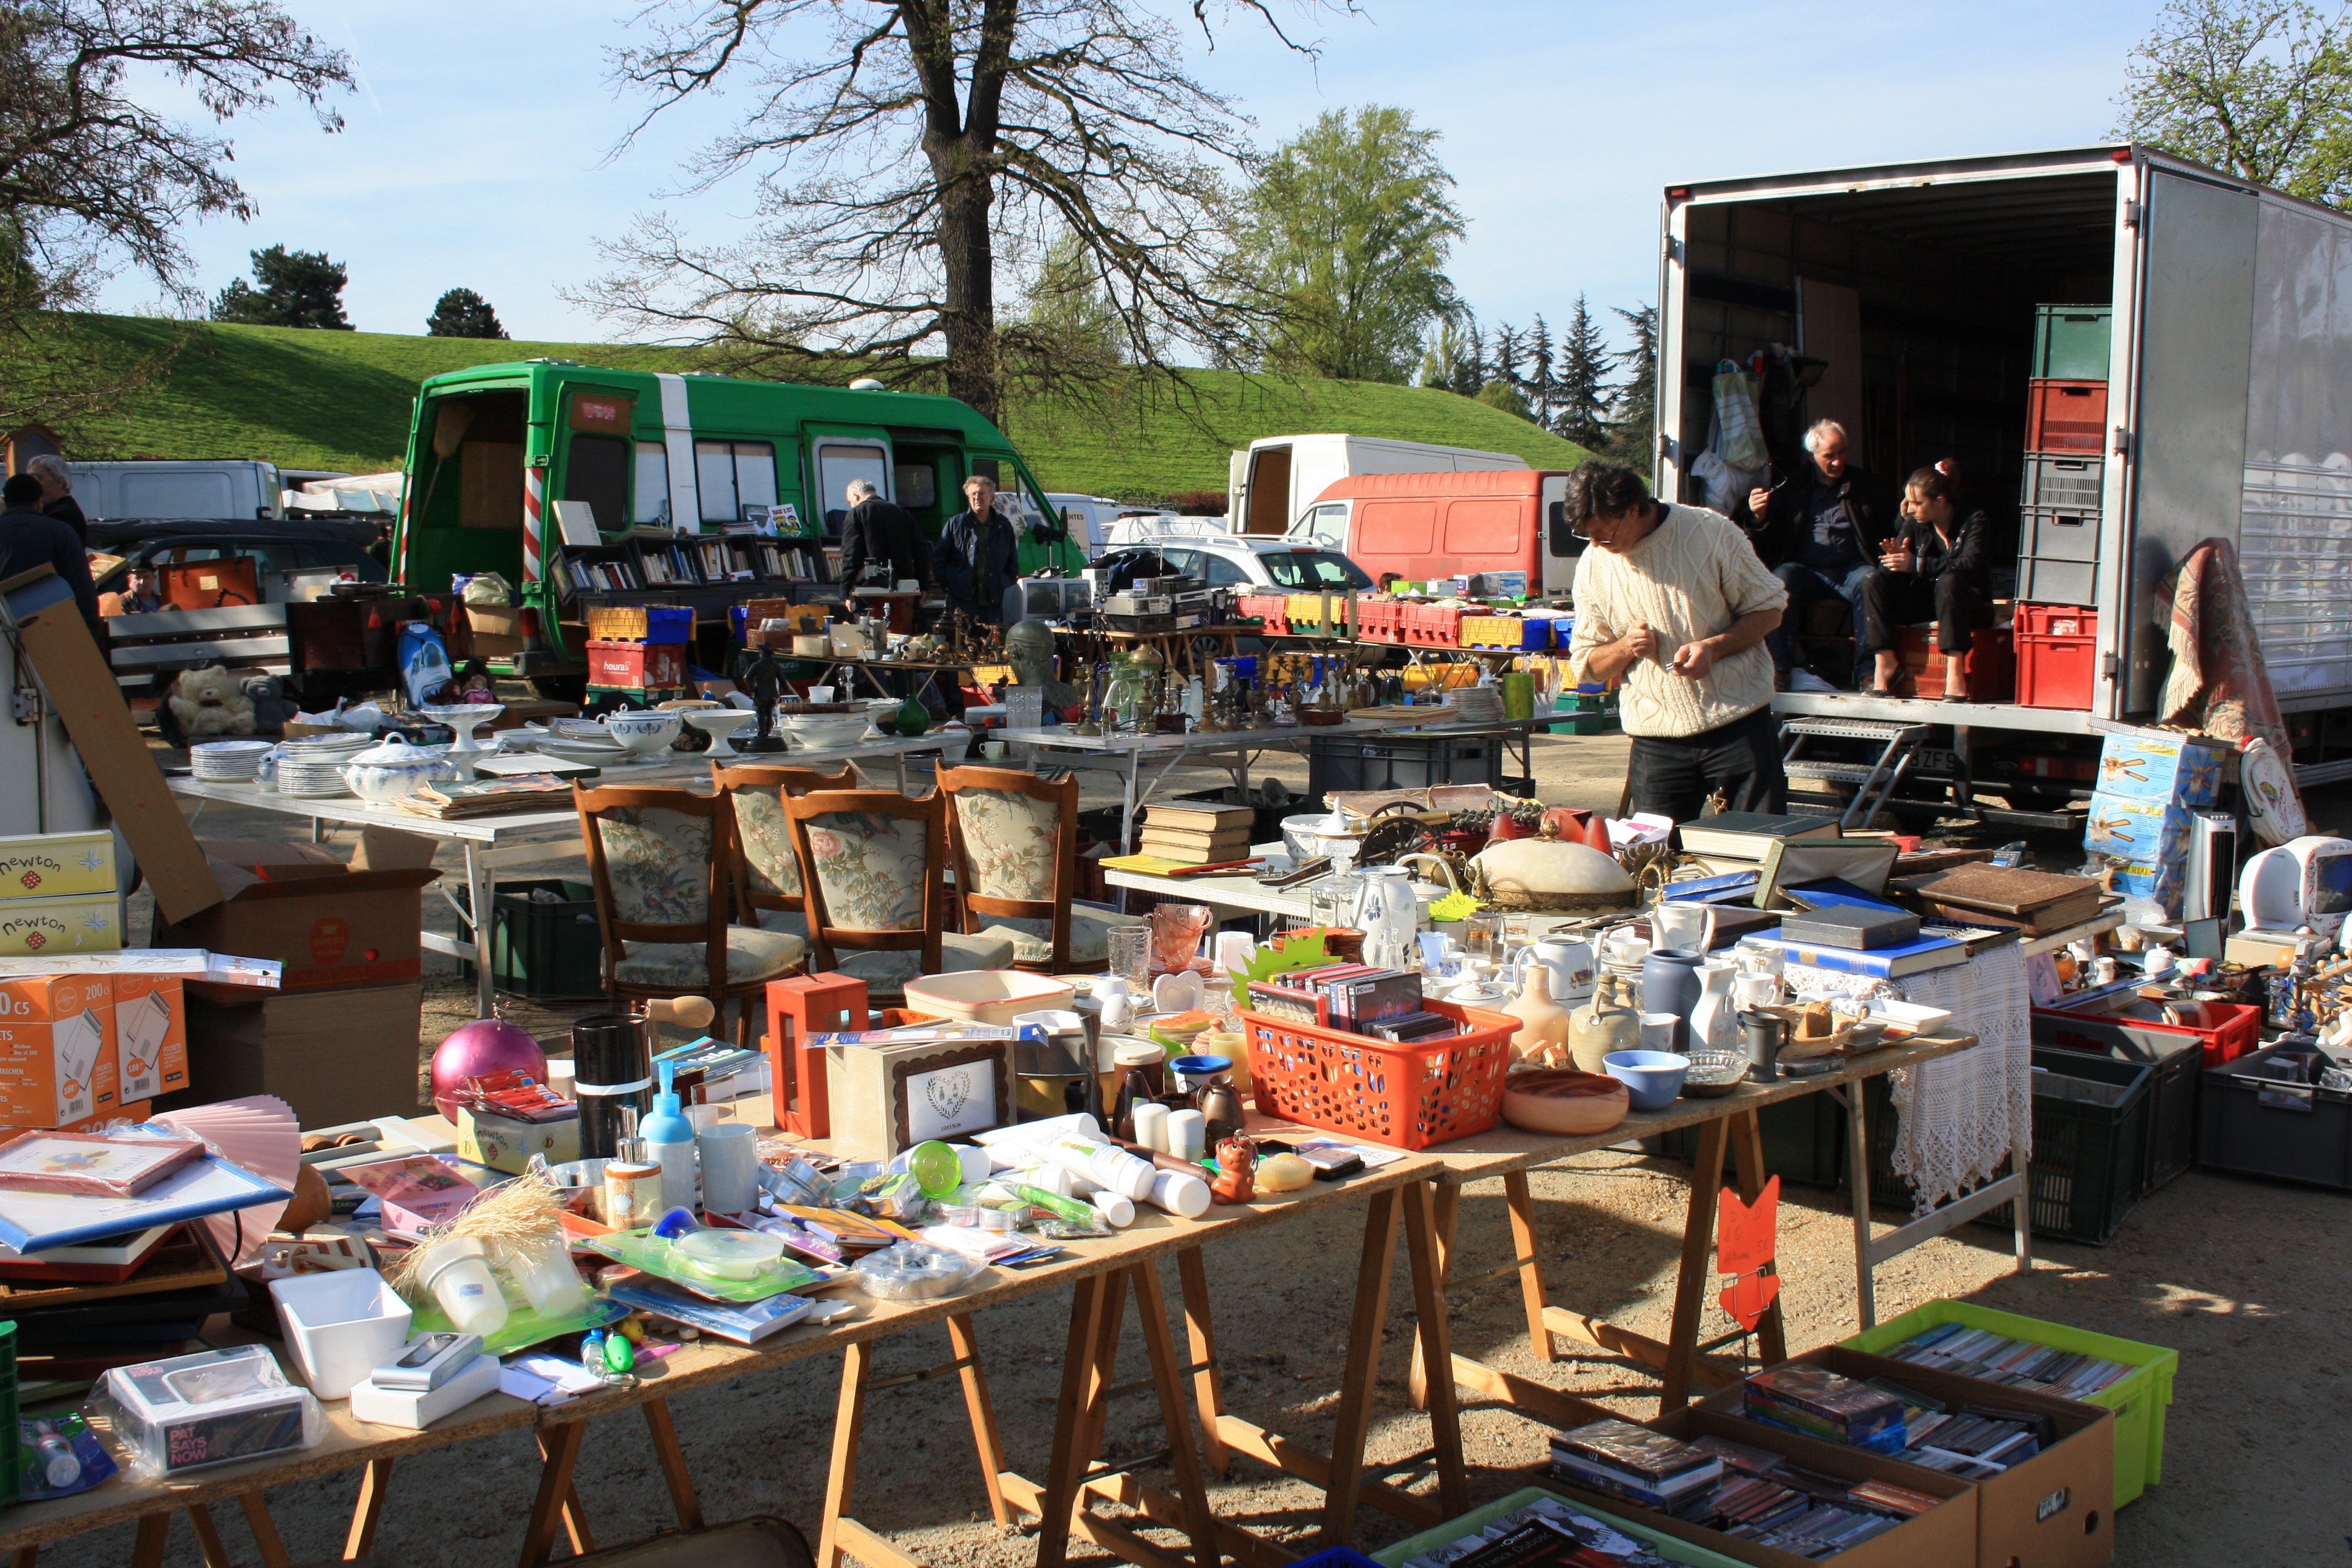 File:Second-hand market in Champigny-sur-Marne 017.jpg